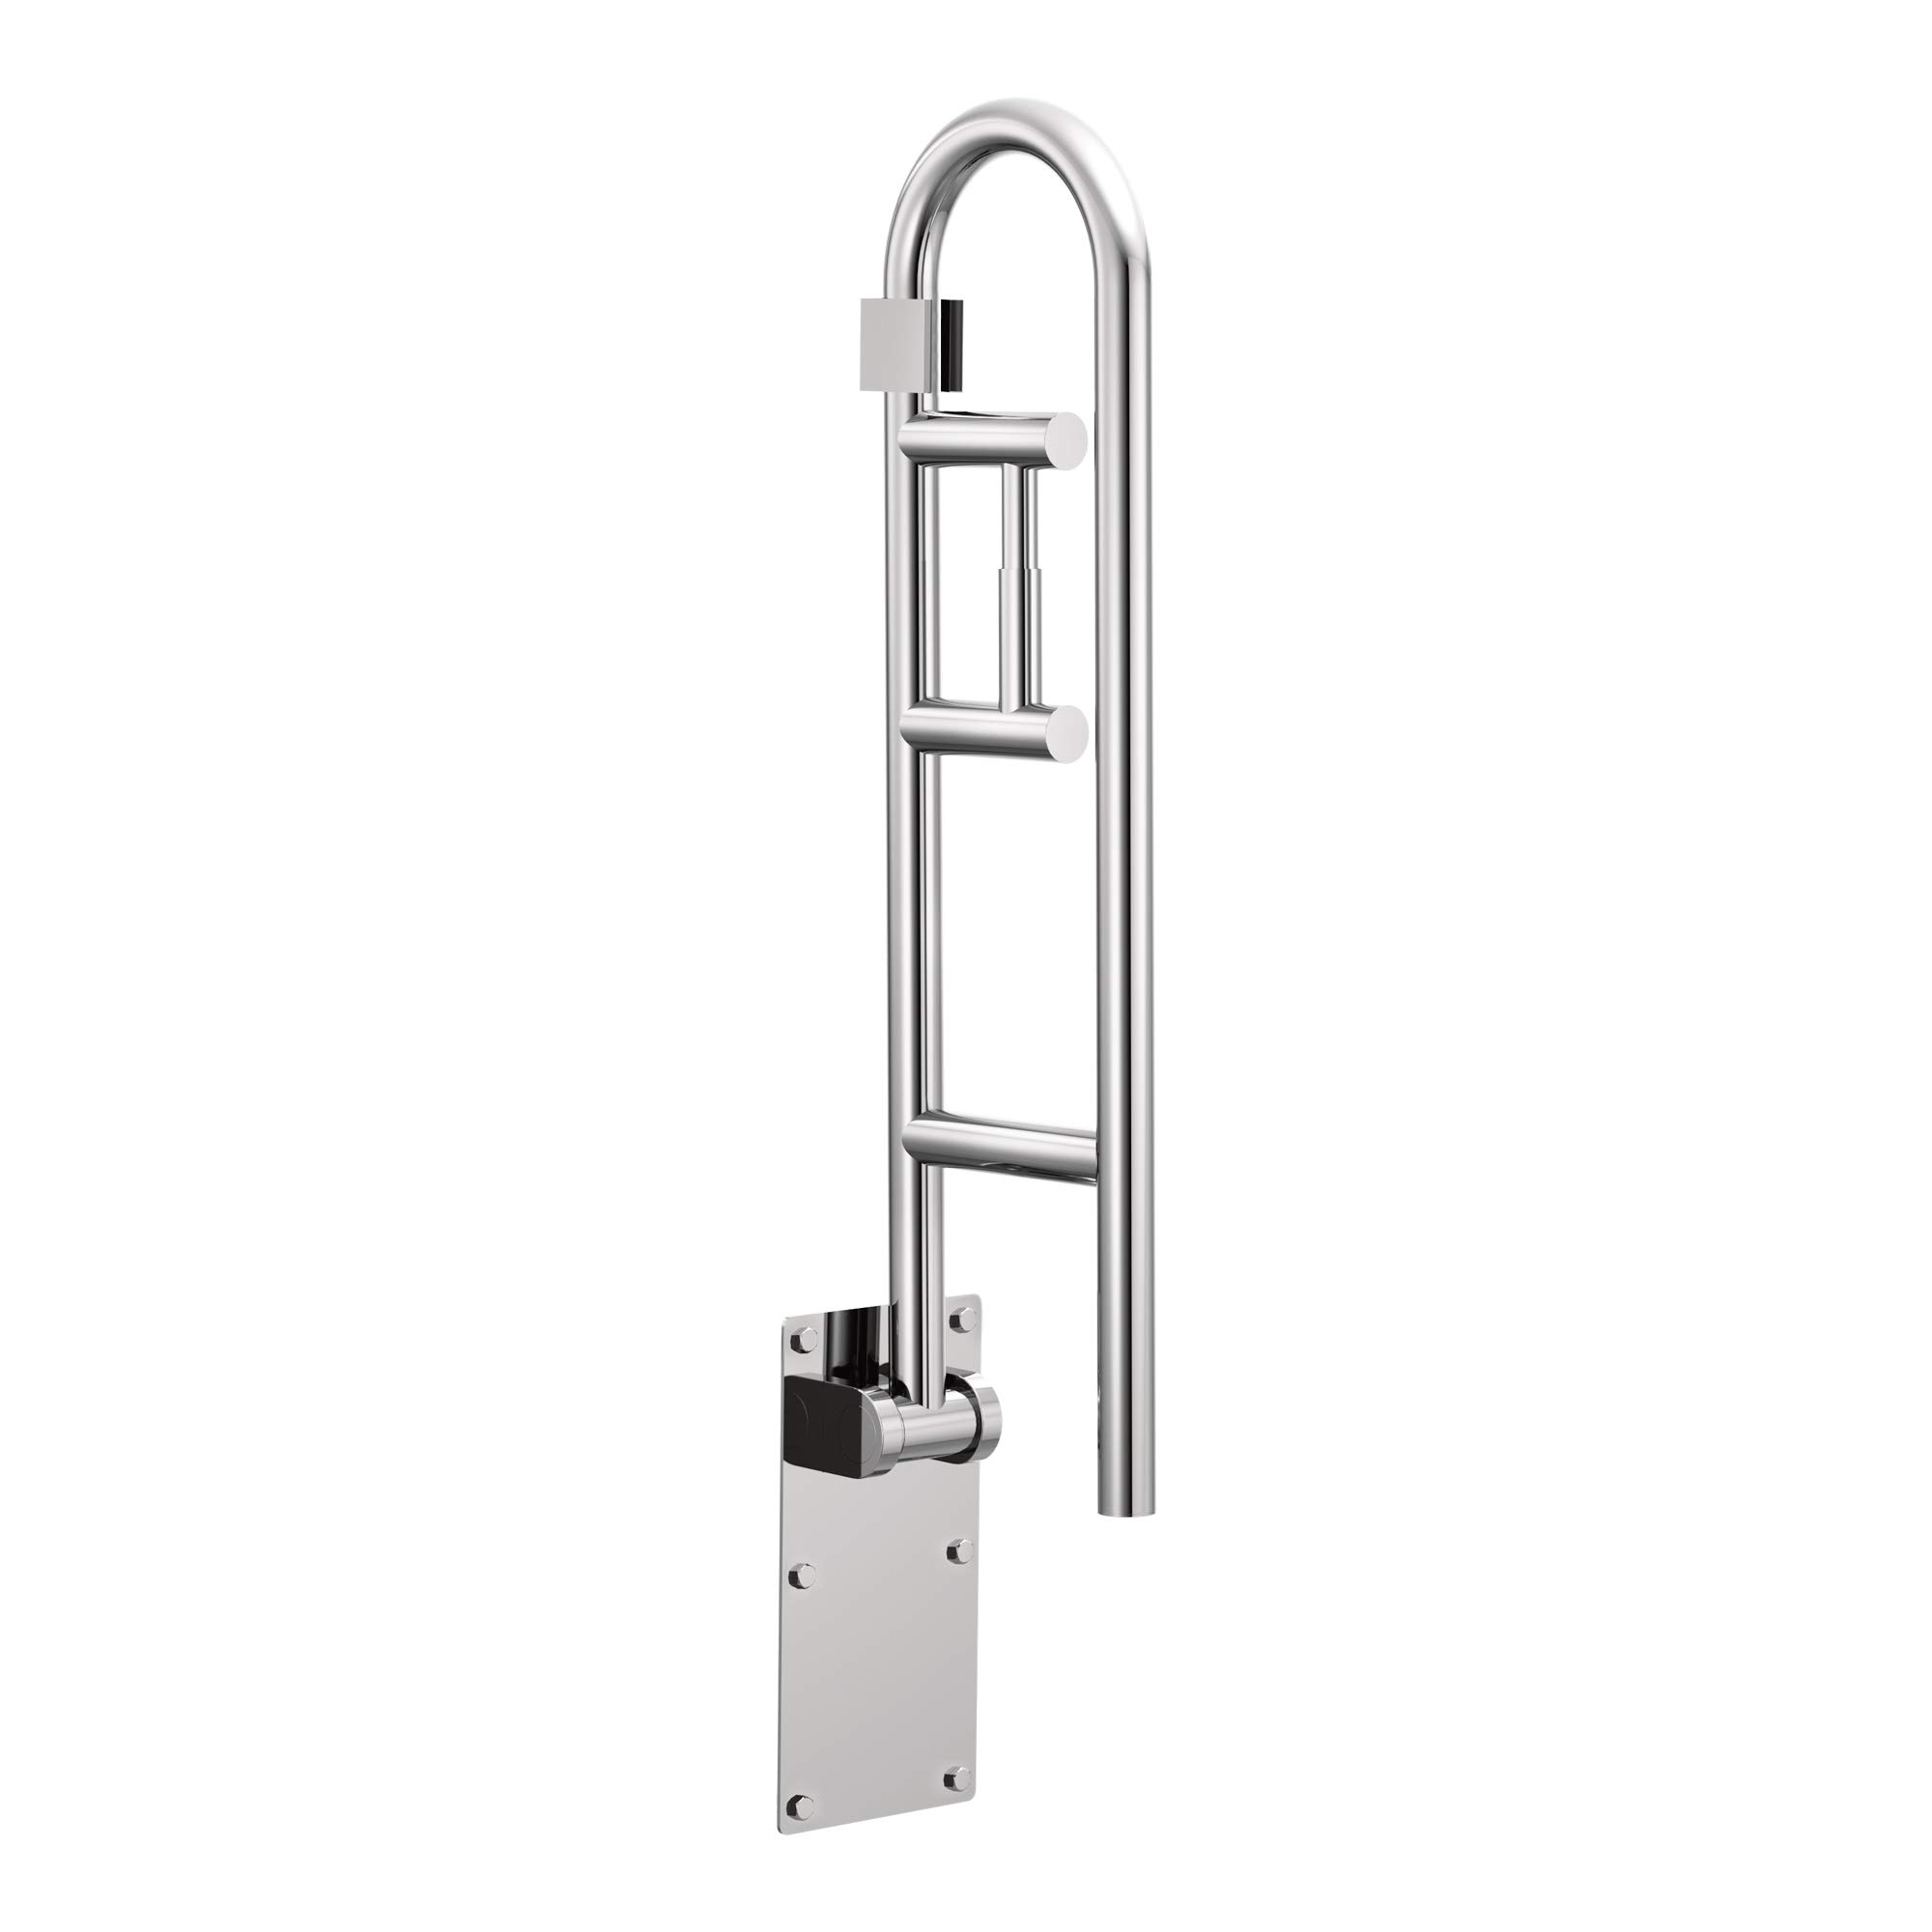 Moen R8962FD Home Care 30-Inch Flip-Up Bathroom Grab Bar with Toilet Paper Holder, Stainless by Moen